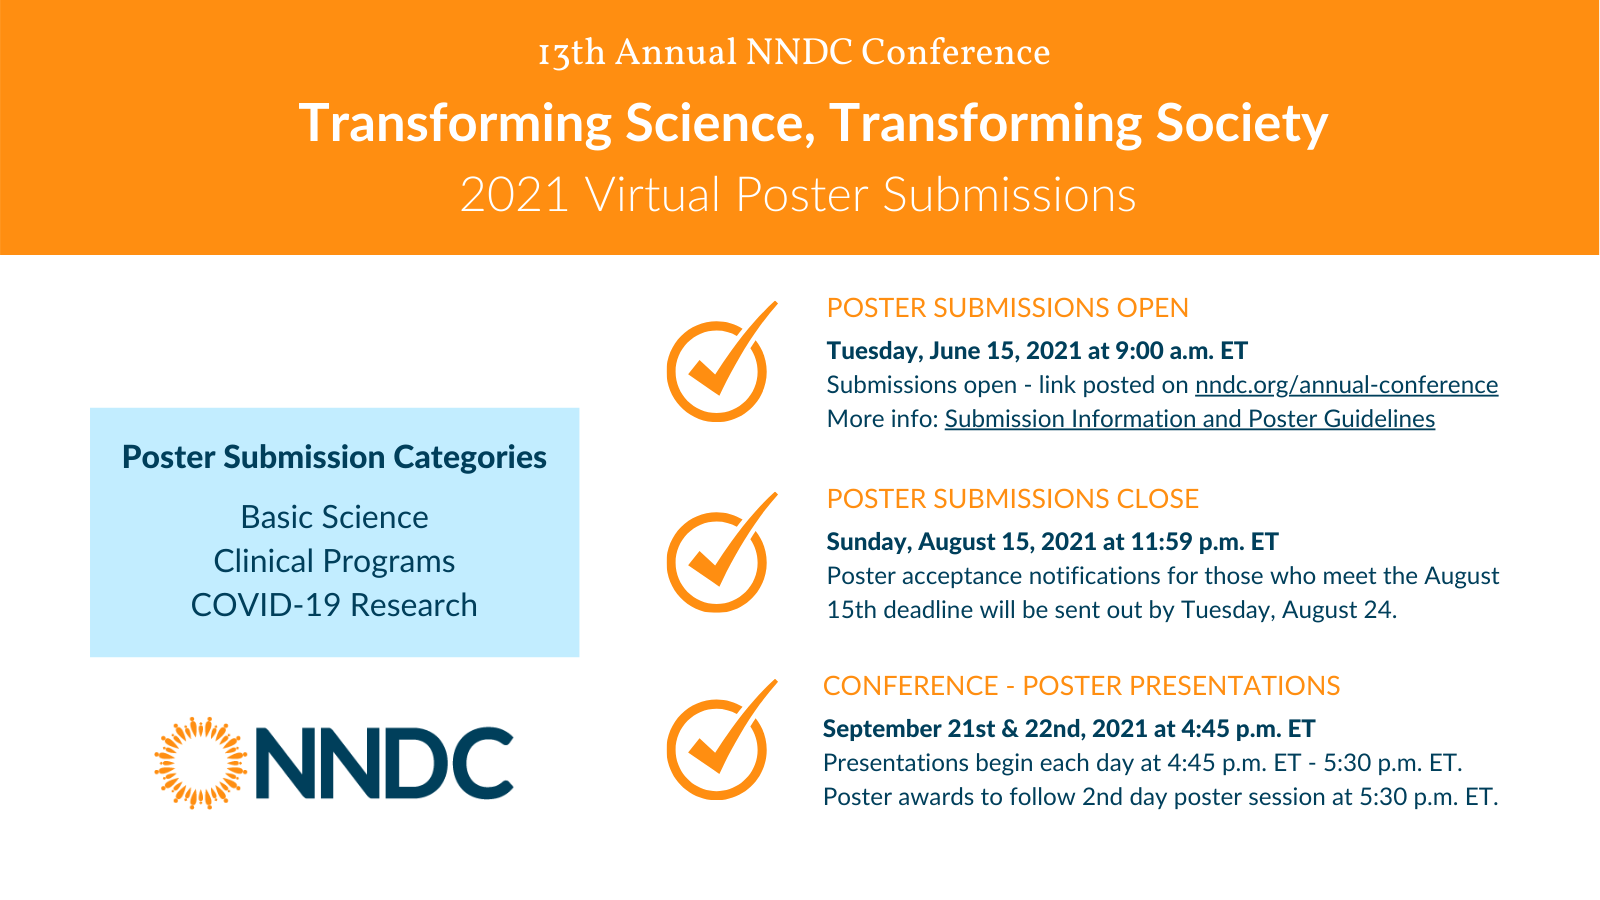 Poster Session Timeline Details. Poster Submissions Open Tuesday, June 15th at 9:00am ET, Poster Submissions close Sunday August 15th at 11:59pm ET